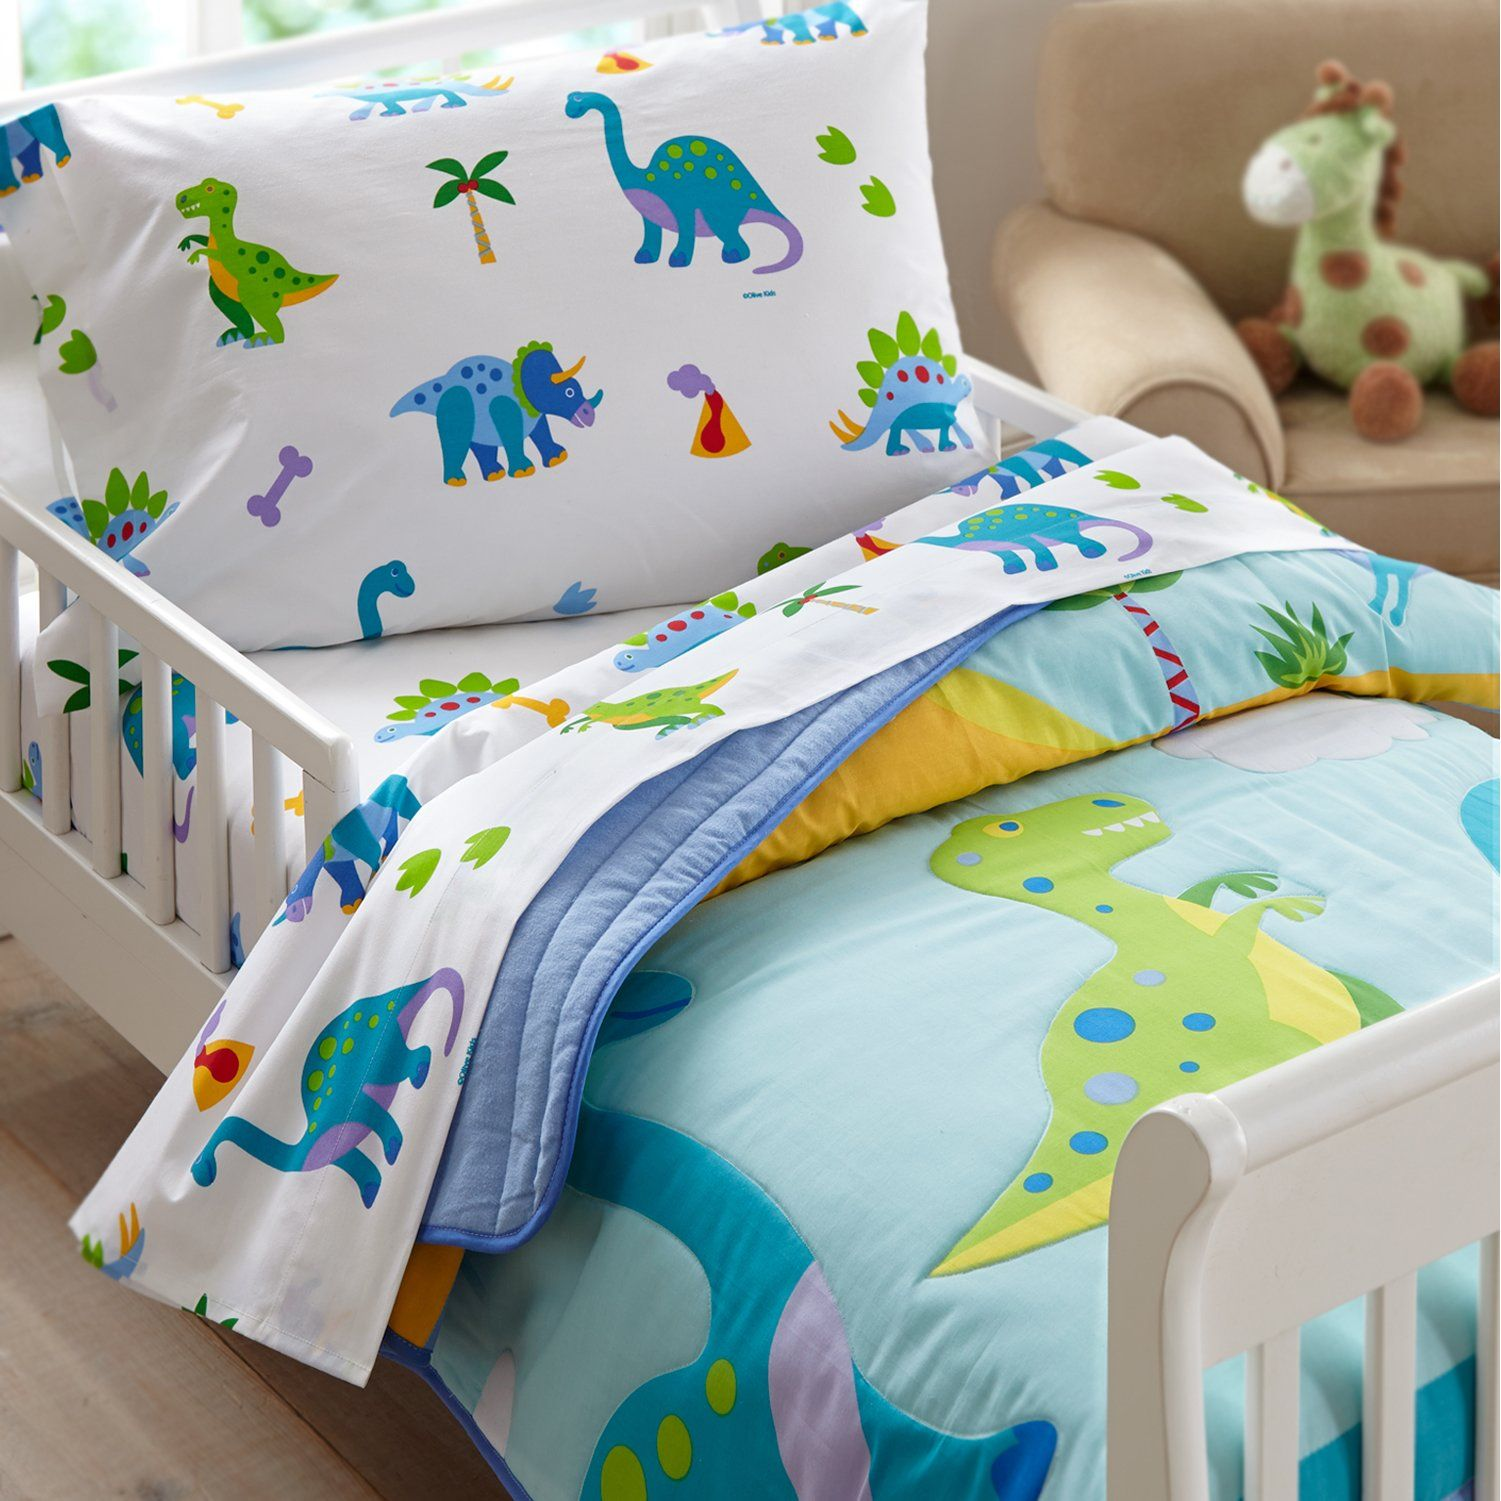 Olive Kids Dinosaur Land Toddler Sheet Set Toddler Bed Set Toddler Bed Boy Dinosaur Toddler Bedding